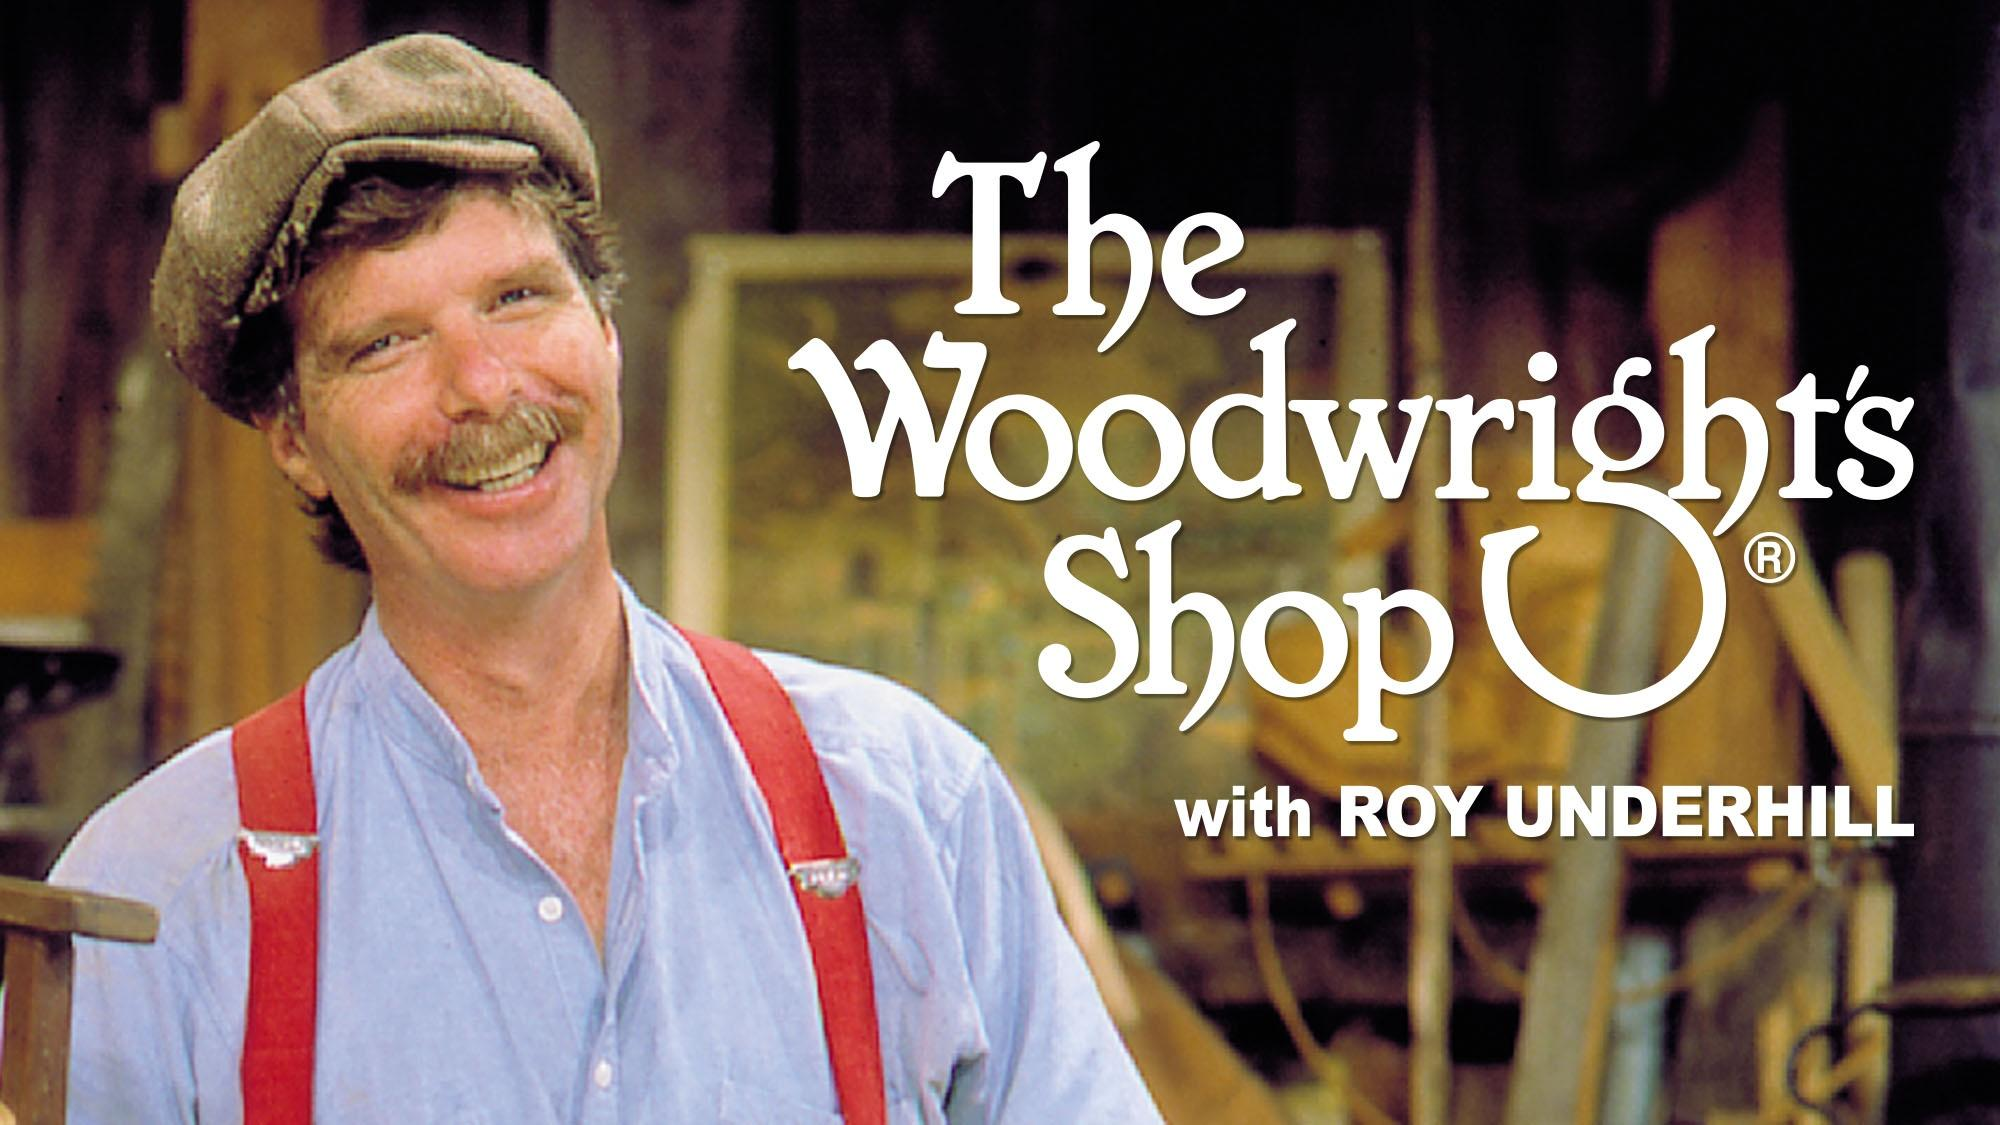 The Woodwright's Shop logo